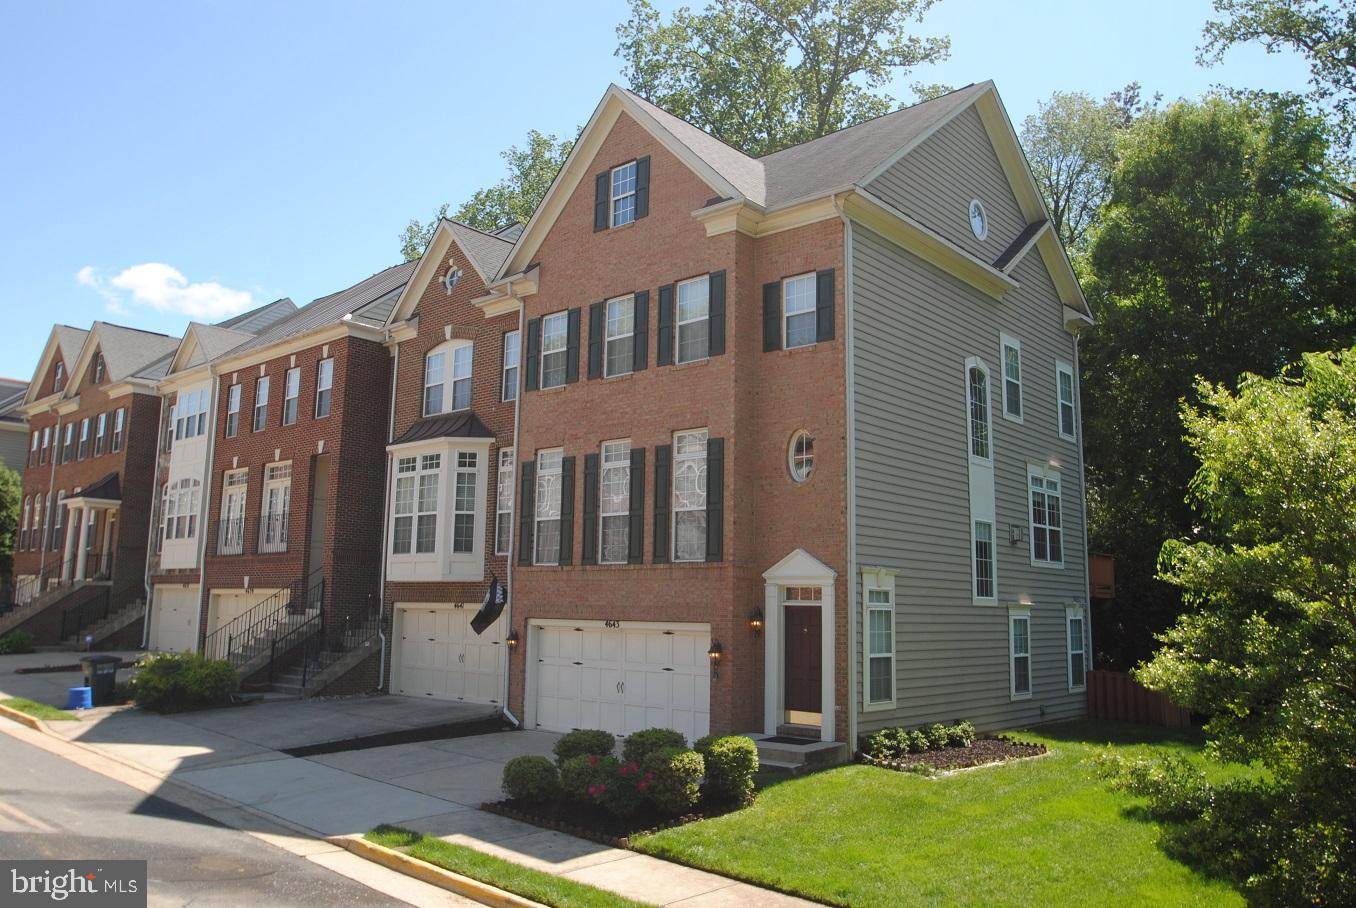 Minutes to Crystal City, Amazon HQ, I-95 & I-495, direct bus to Old Town Alexandria and Express Pentagon Metro Bus. Walking distance to Day care, and Thomas Jefferson High School for Science and Technology, a top rated, public, magnet school located in Alexandria, VA. Trail to Indian Run Creek Reserve. Best end unit in community facing large open green area. Hardwood floor on 2nd level. Gourmet kitchen with maple cabinets, granite counter tops, stainless steel appliances, and two-level eat-in island. Family room with large windows and sliding doors leading to huge deck. Luxury master bath with Jacuzzi tub and enlarged shower. Lower level with a full bath rough-in. Excellent and truly moving in condition. Furniture and curtain can be bought separately.